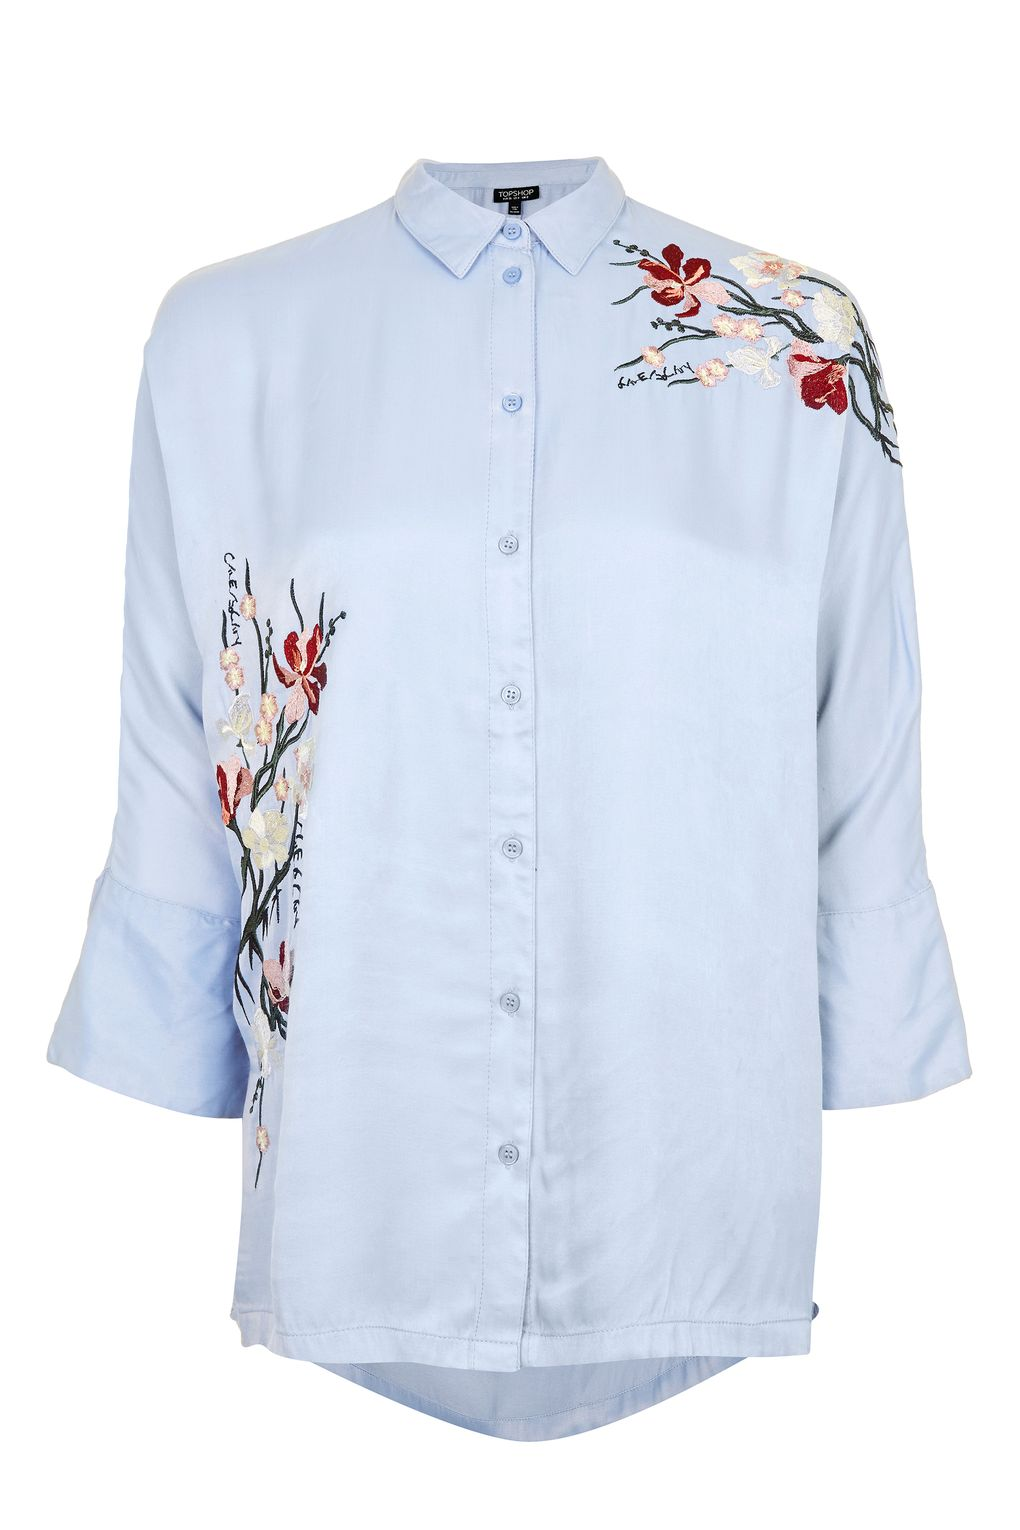 office shirt embroidery photo - 1